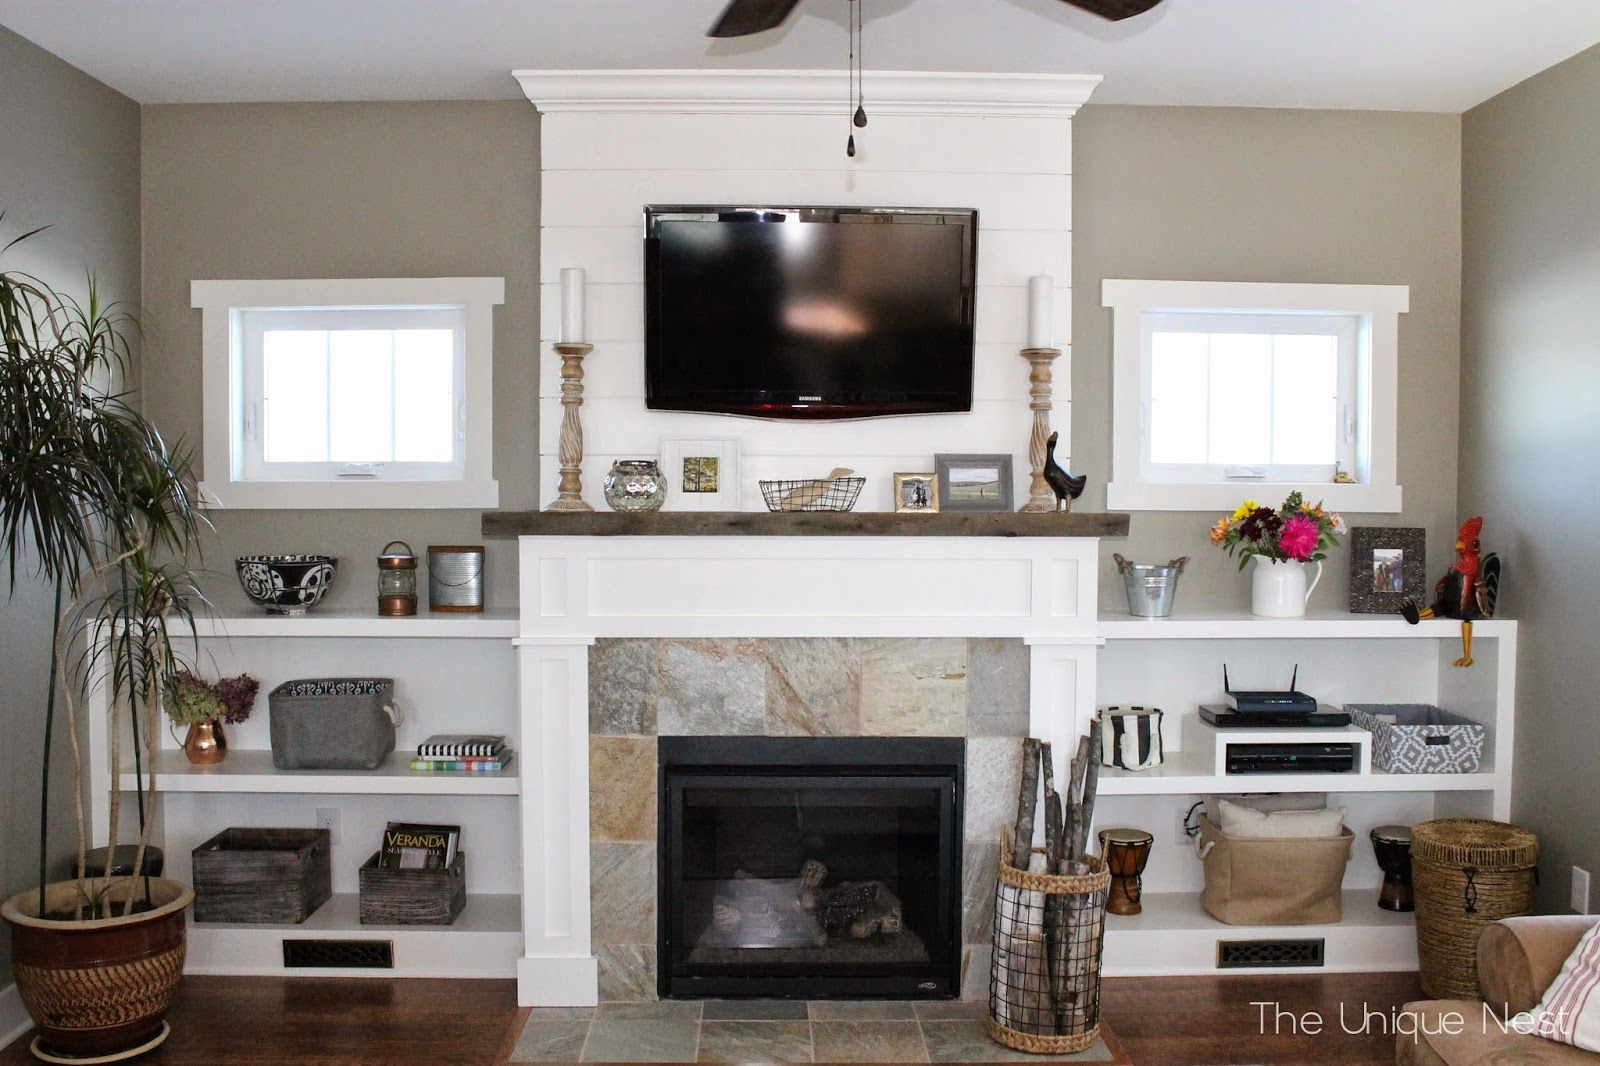 The Unique Nest Shiplap Fireplace With Built Ins Fireplace Built Ins Rustic Living Room Design Living Room With Fireplace